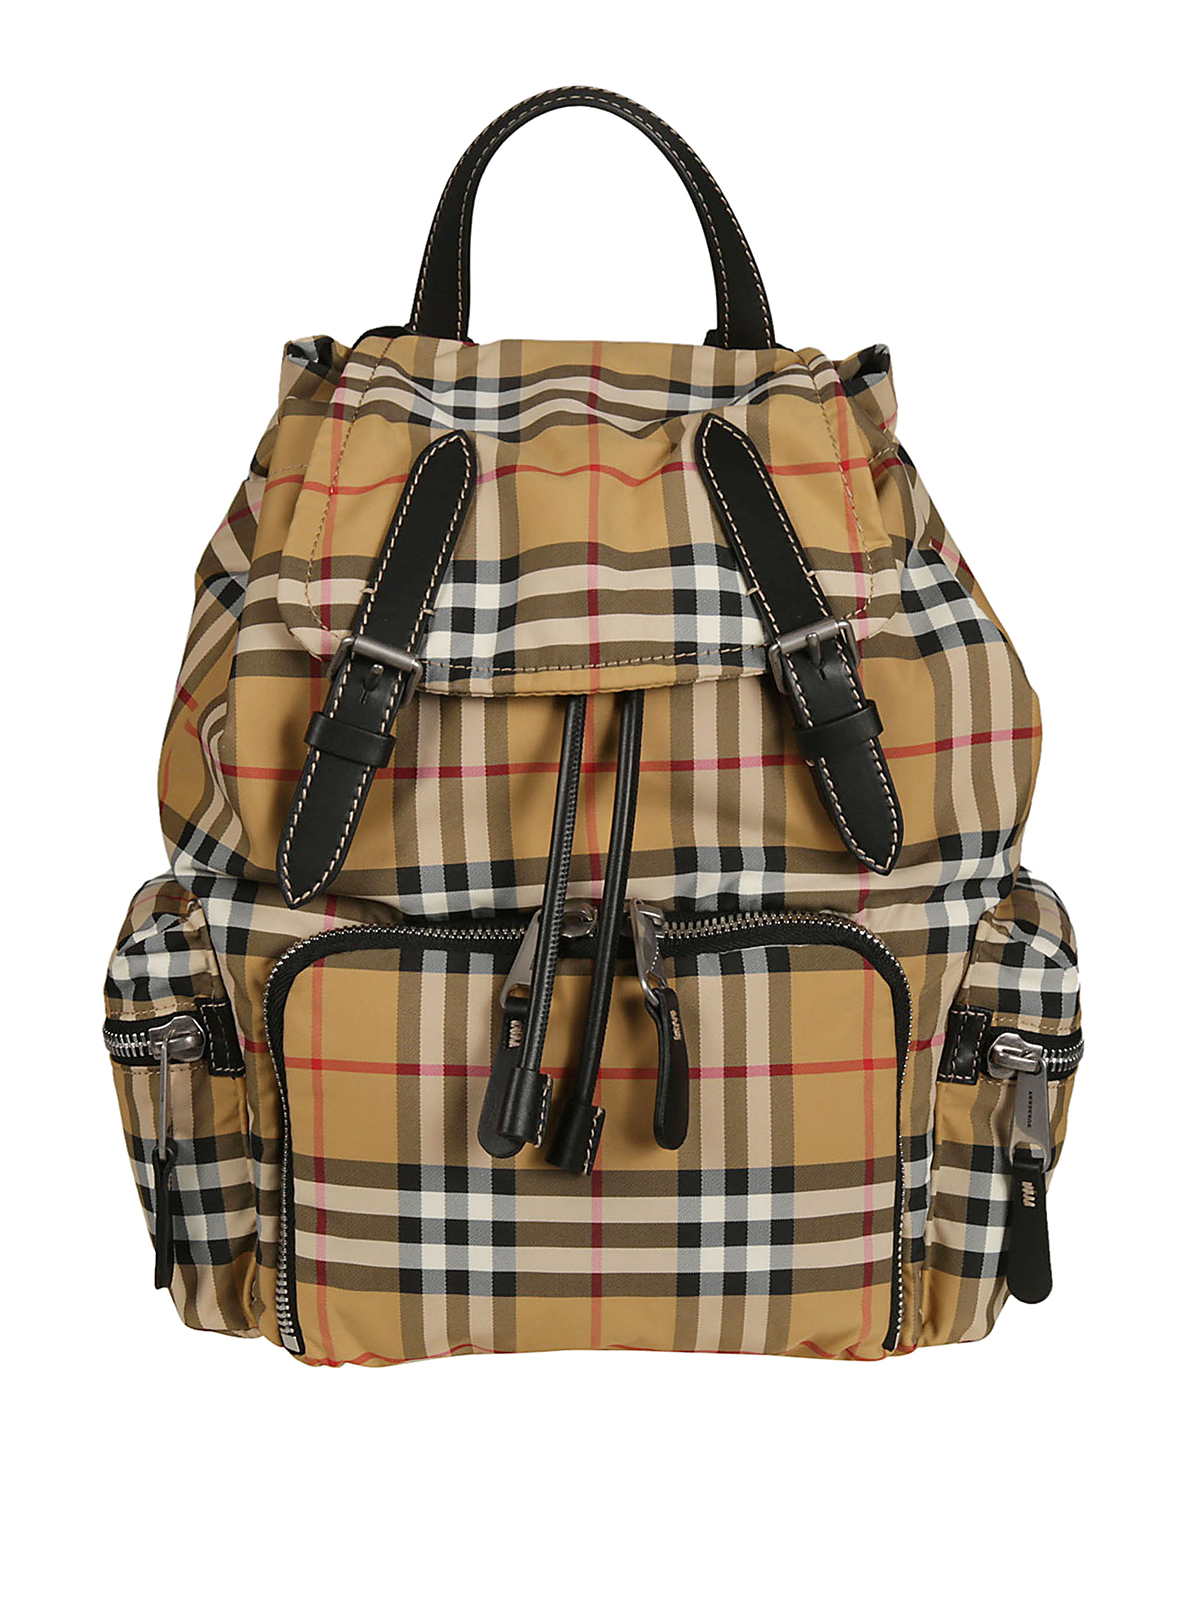 76017cb57d Burberry - Zaino in nylon The Medium Rucksack - zaini - 8006724